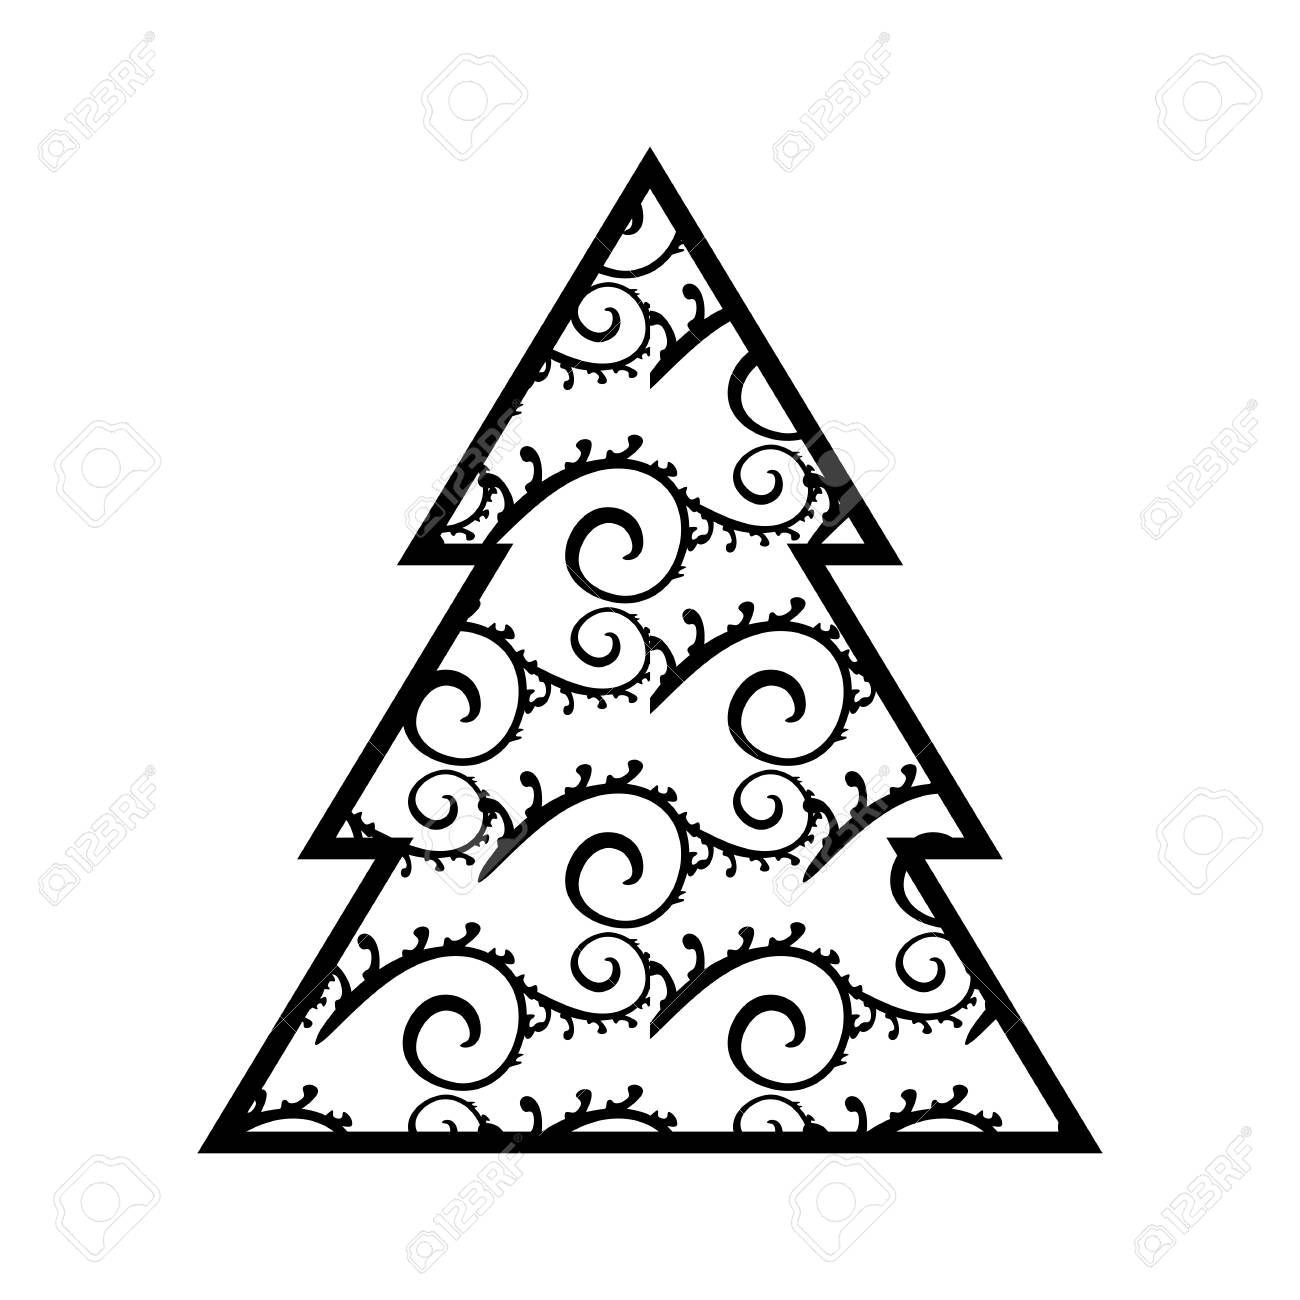 Simple Black Christmas Tree Icon With Abstract Pattern Isolated